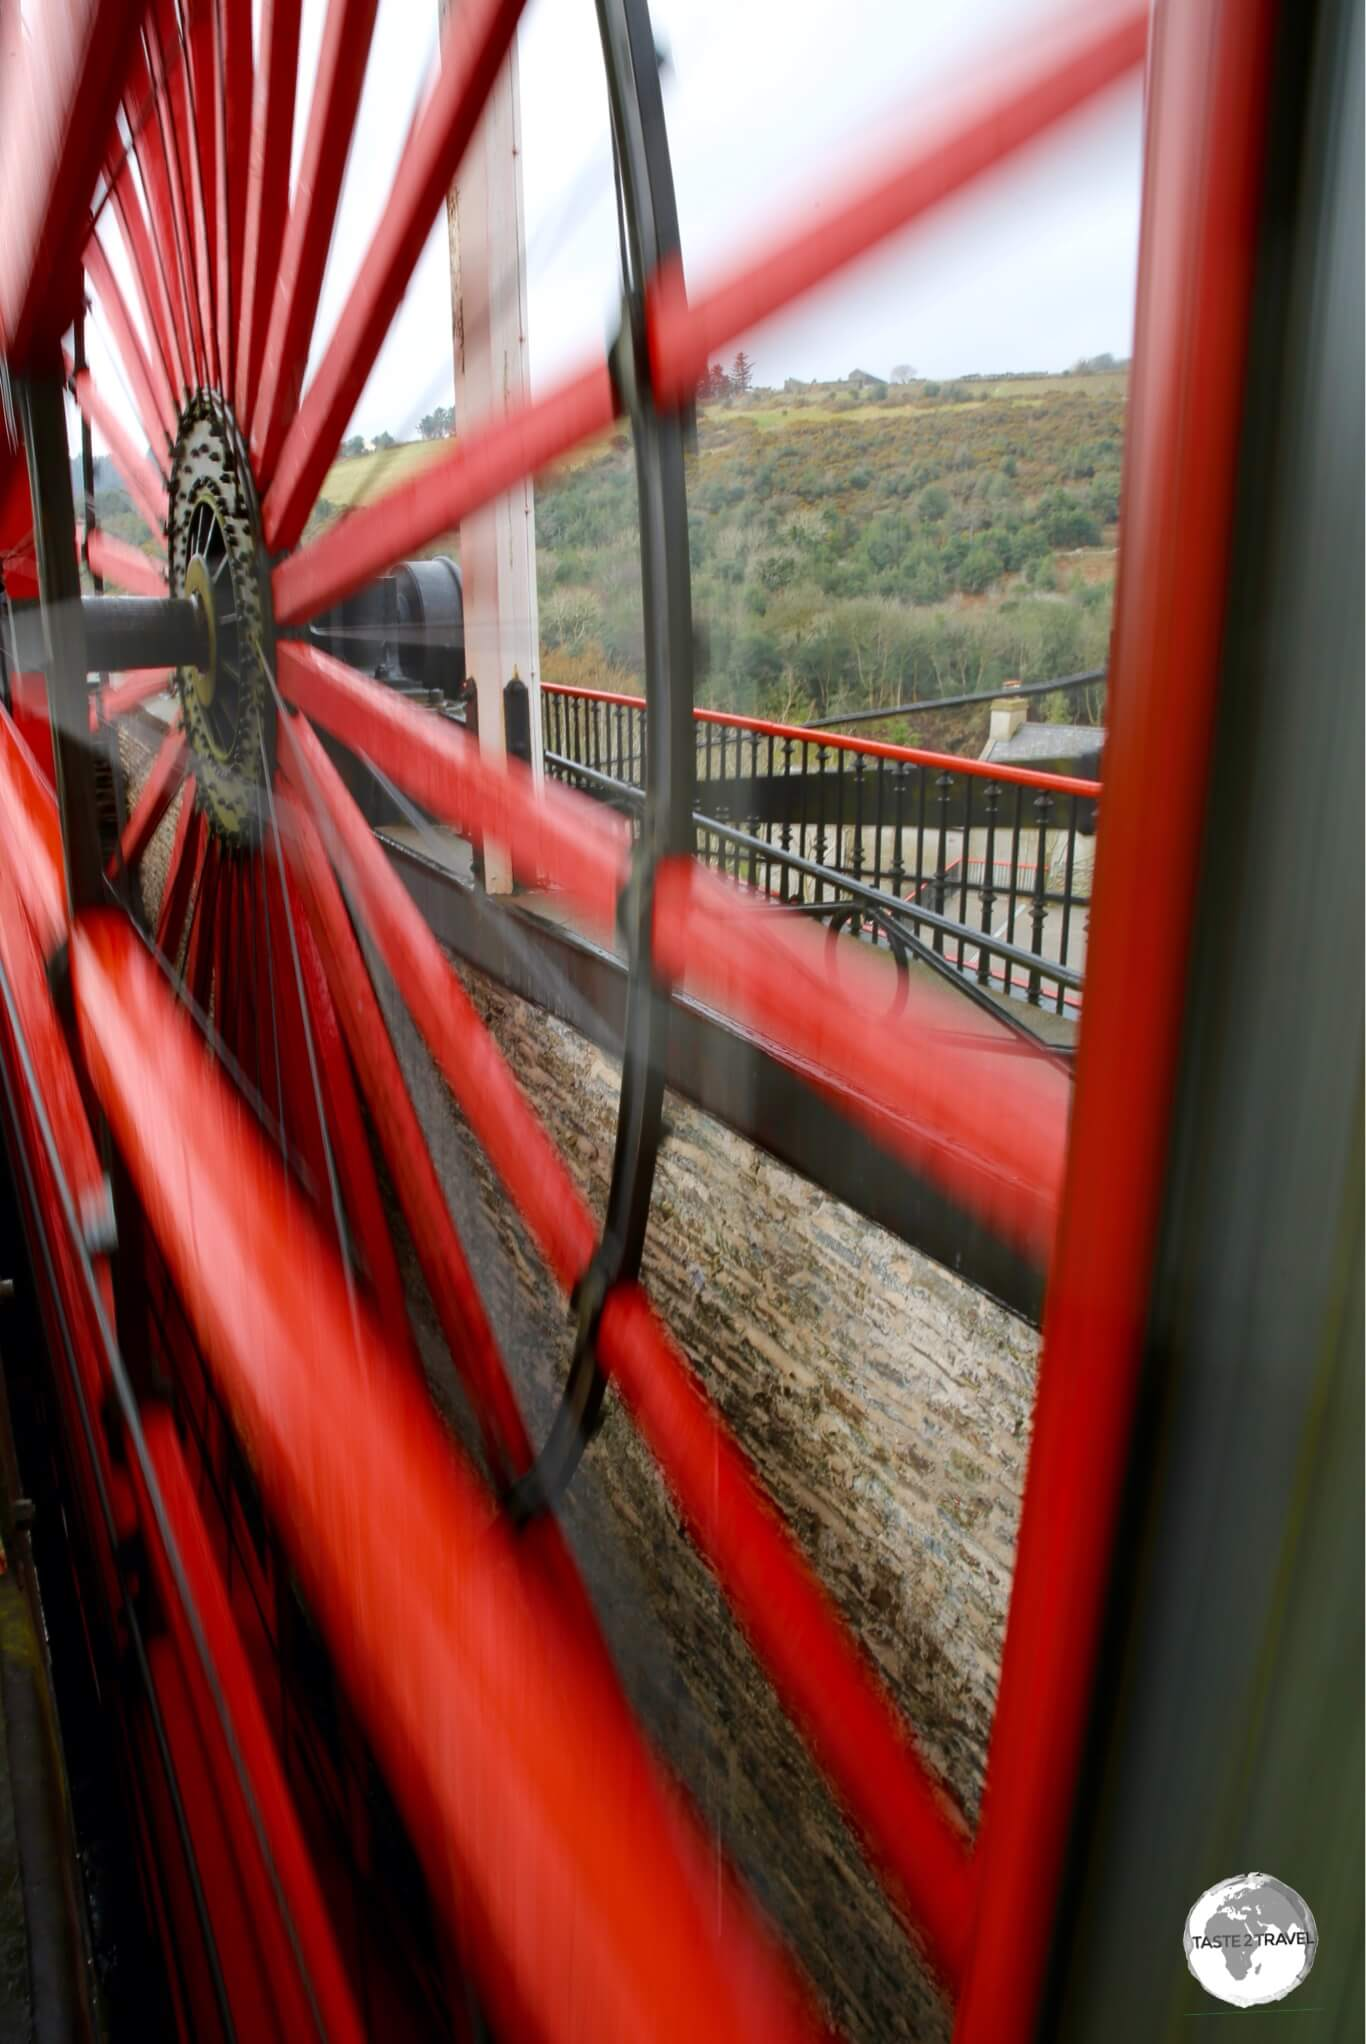 Getting close to the Laxey wheel.